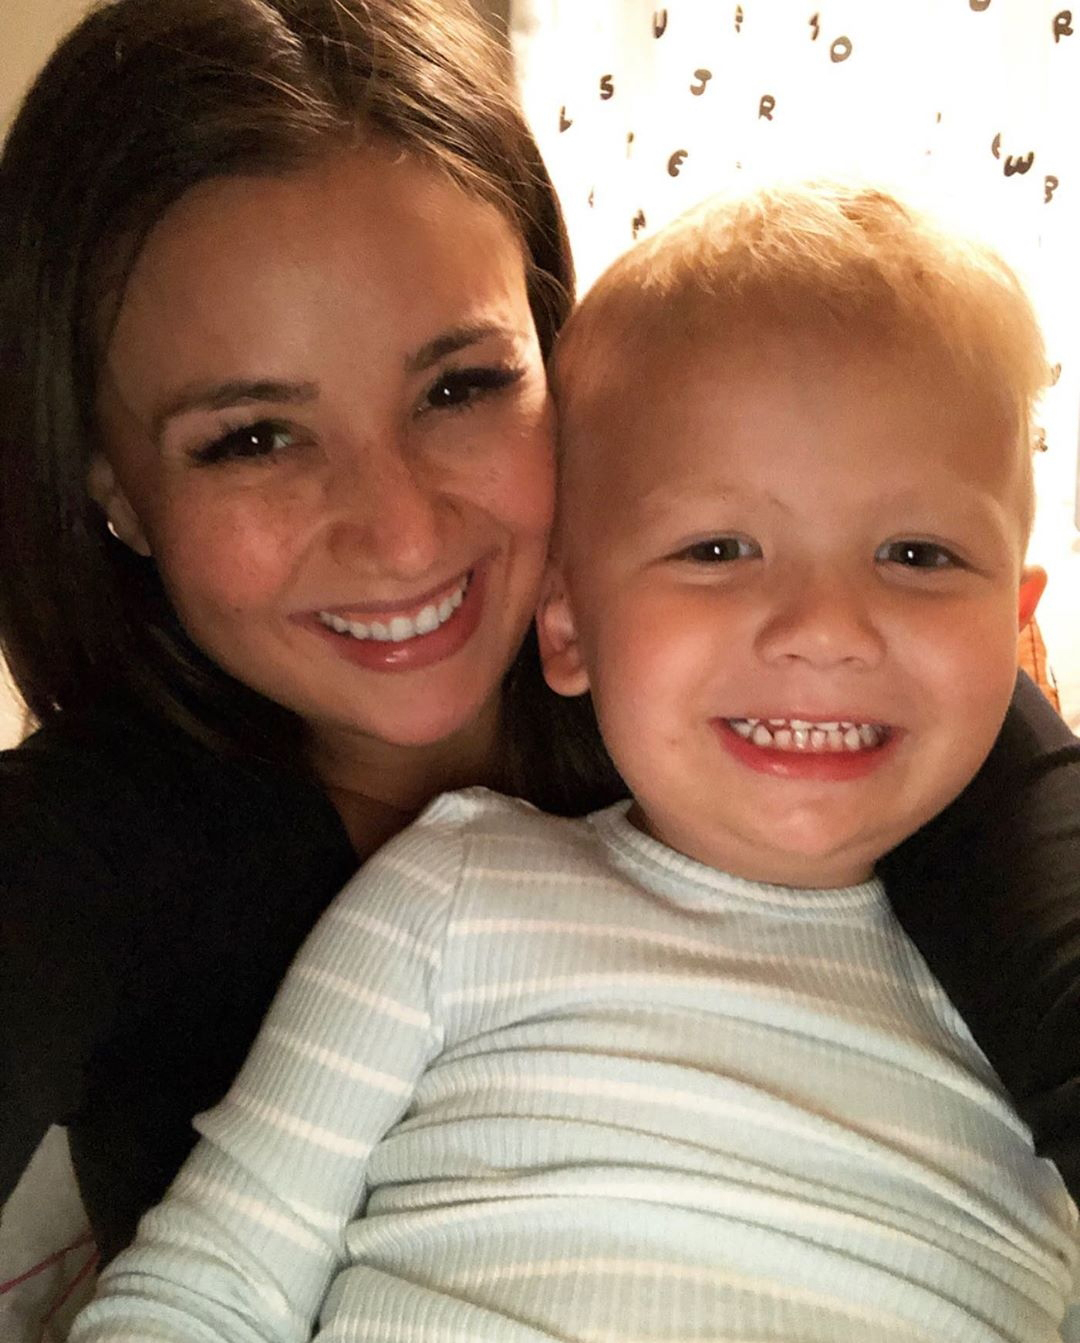 """Catherine Giudici and Sean Lowe Family Album - """"The Terrible Twos just did not exist in our home this year,"""" Giudici captioned a selfie with Samuel in July 2019 on his 3rd birthday. """"Hopeful that three is just as wonderful."""""""